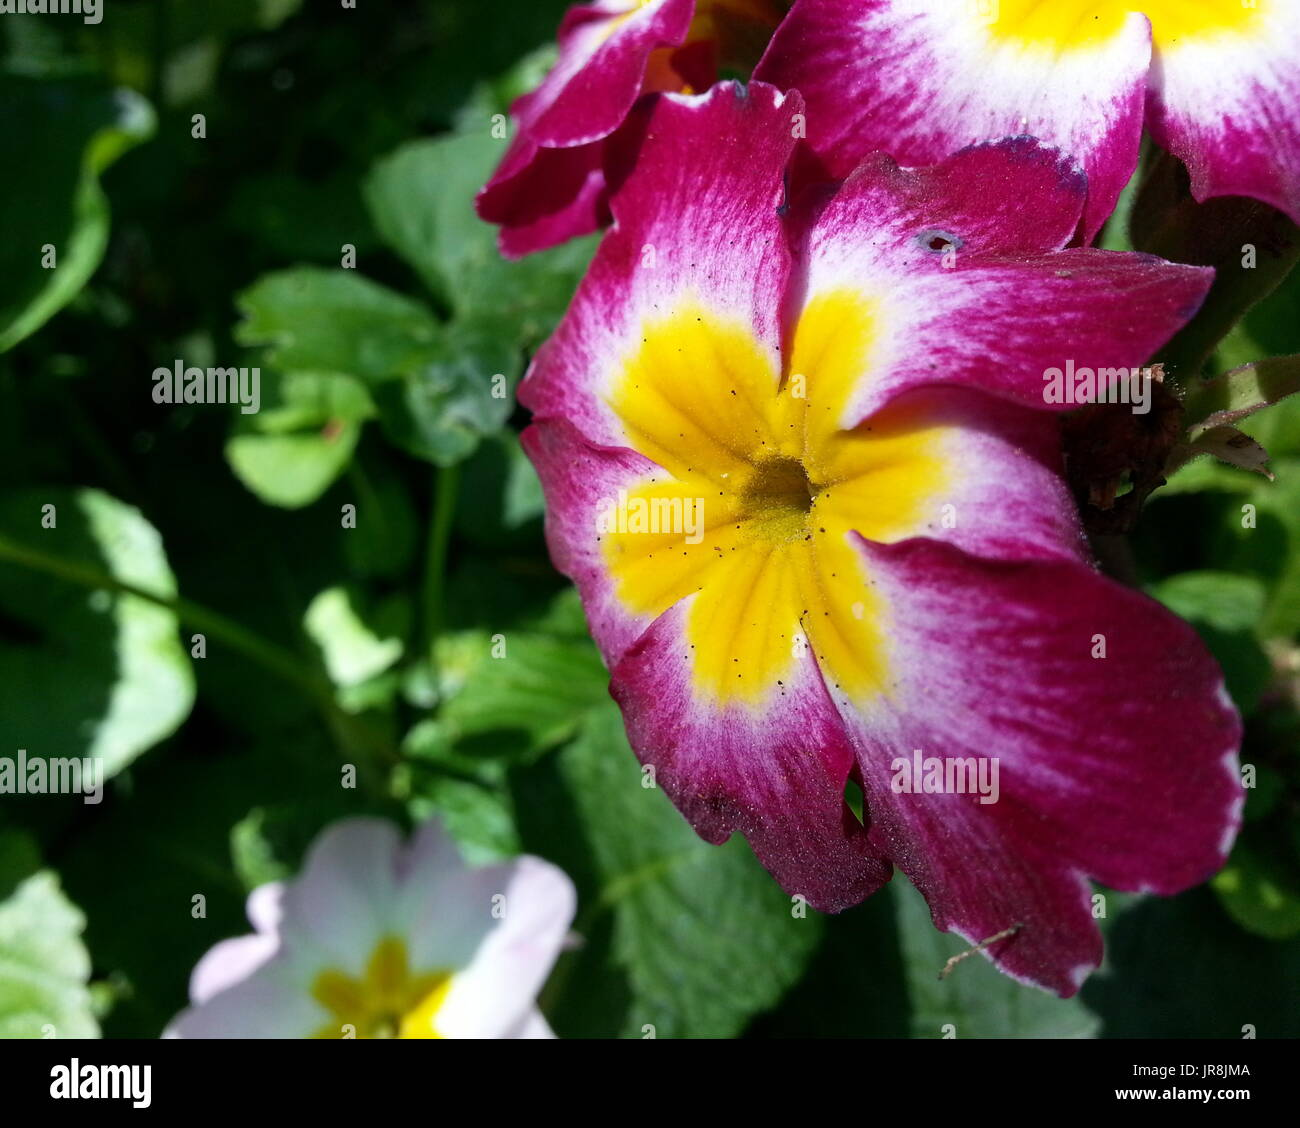 Pink Flower With Yellow Center Stock Photo 152010330 Alamy